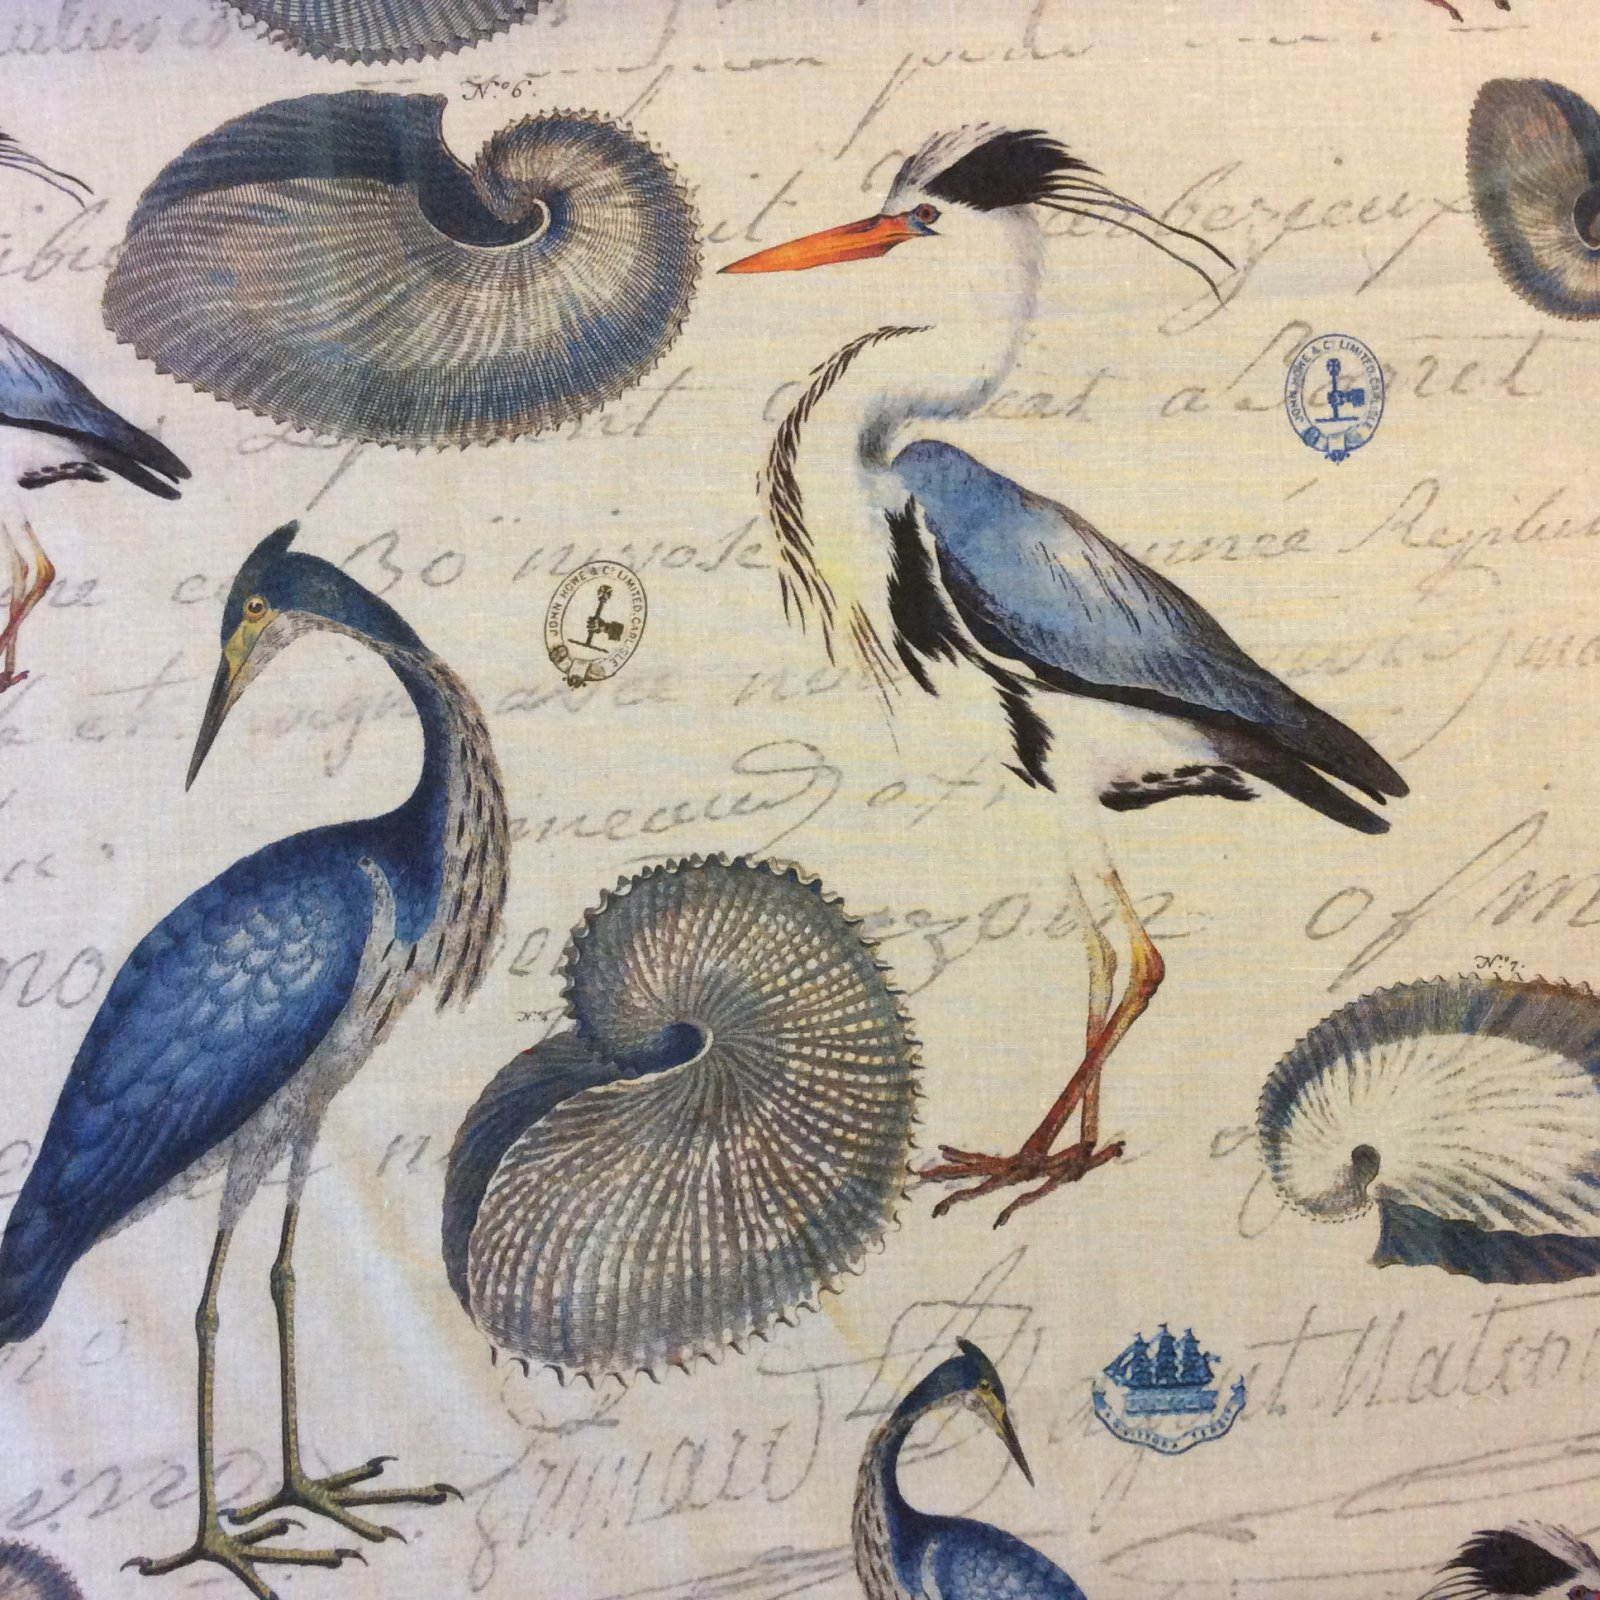 DLSO109 Illustrated Heron Drapery Linen Fabric Linen Weave Cotton Fabric Upholstery Drapery Fabric